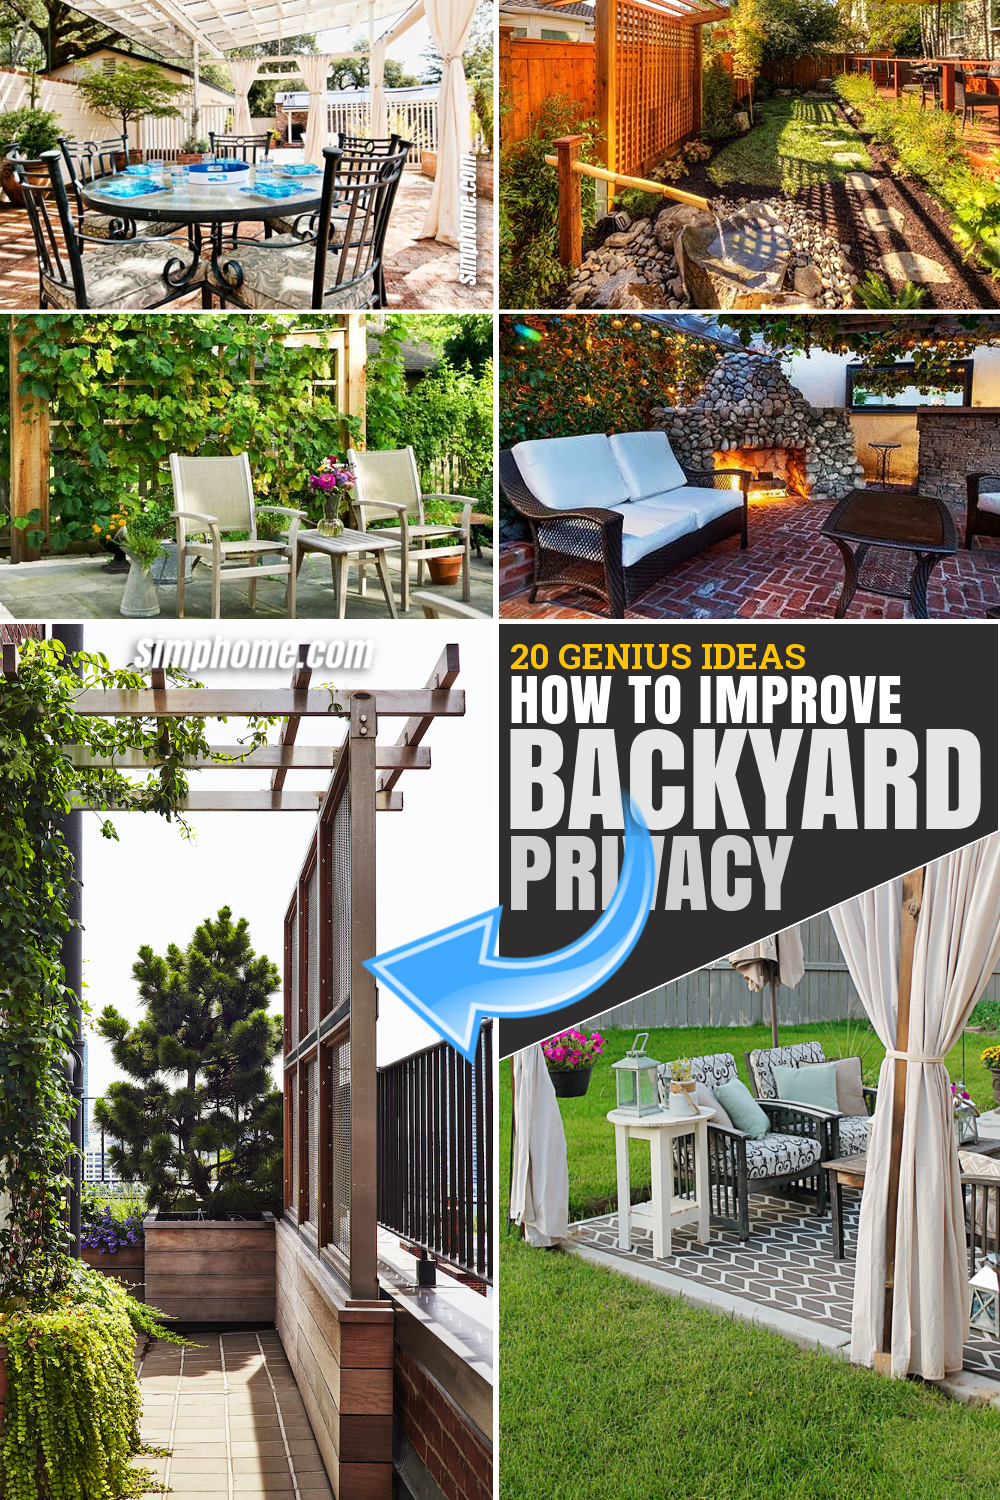 SIMPHOME.COM 10 Ways on How to Improve Backyard Privacy Featured Image Pinterest